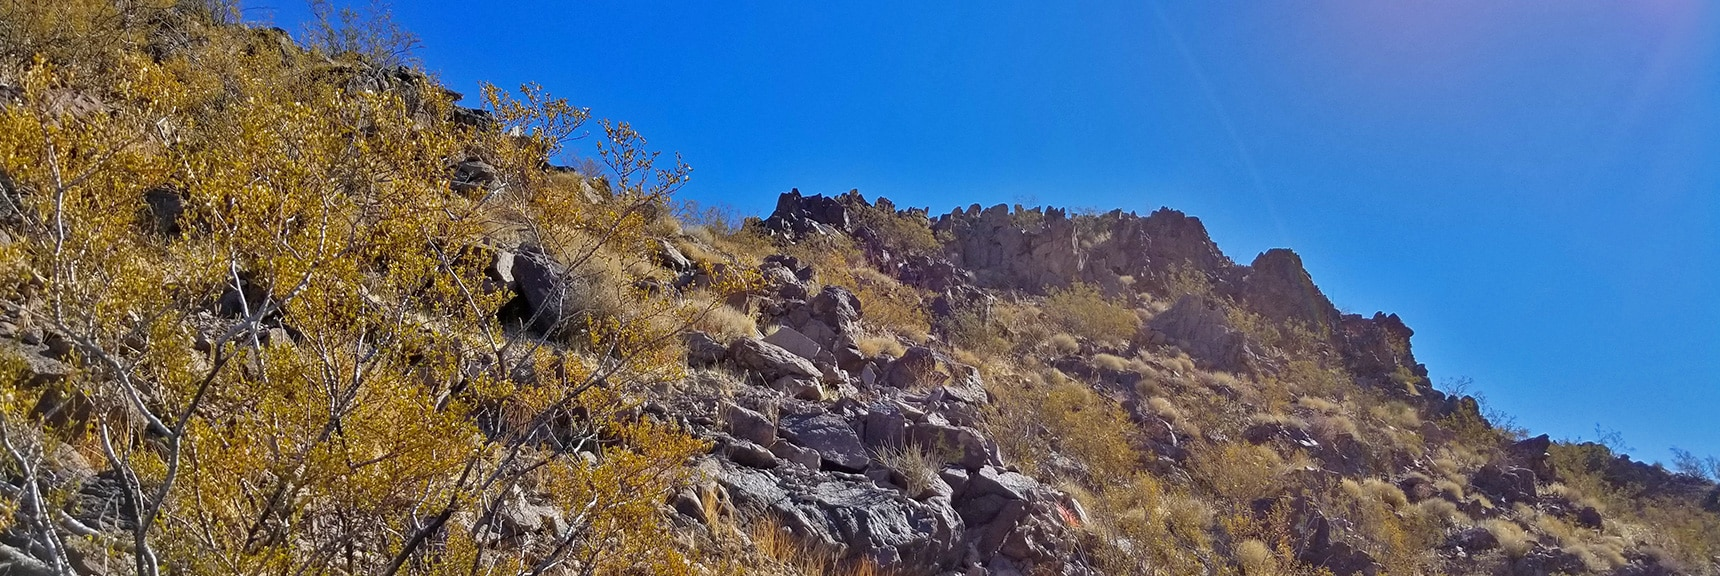 Nearing the First Summit in the High Points Around Hamblin Mt. | Hamblin Mountain, Lake Mead National Conservation Area, Nevada